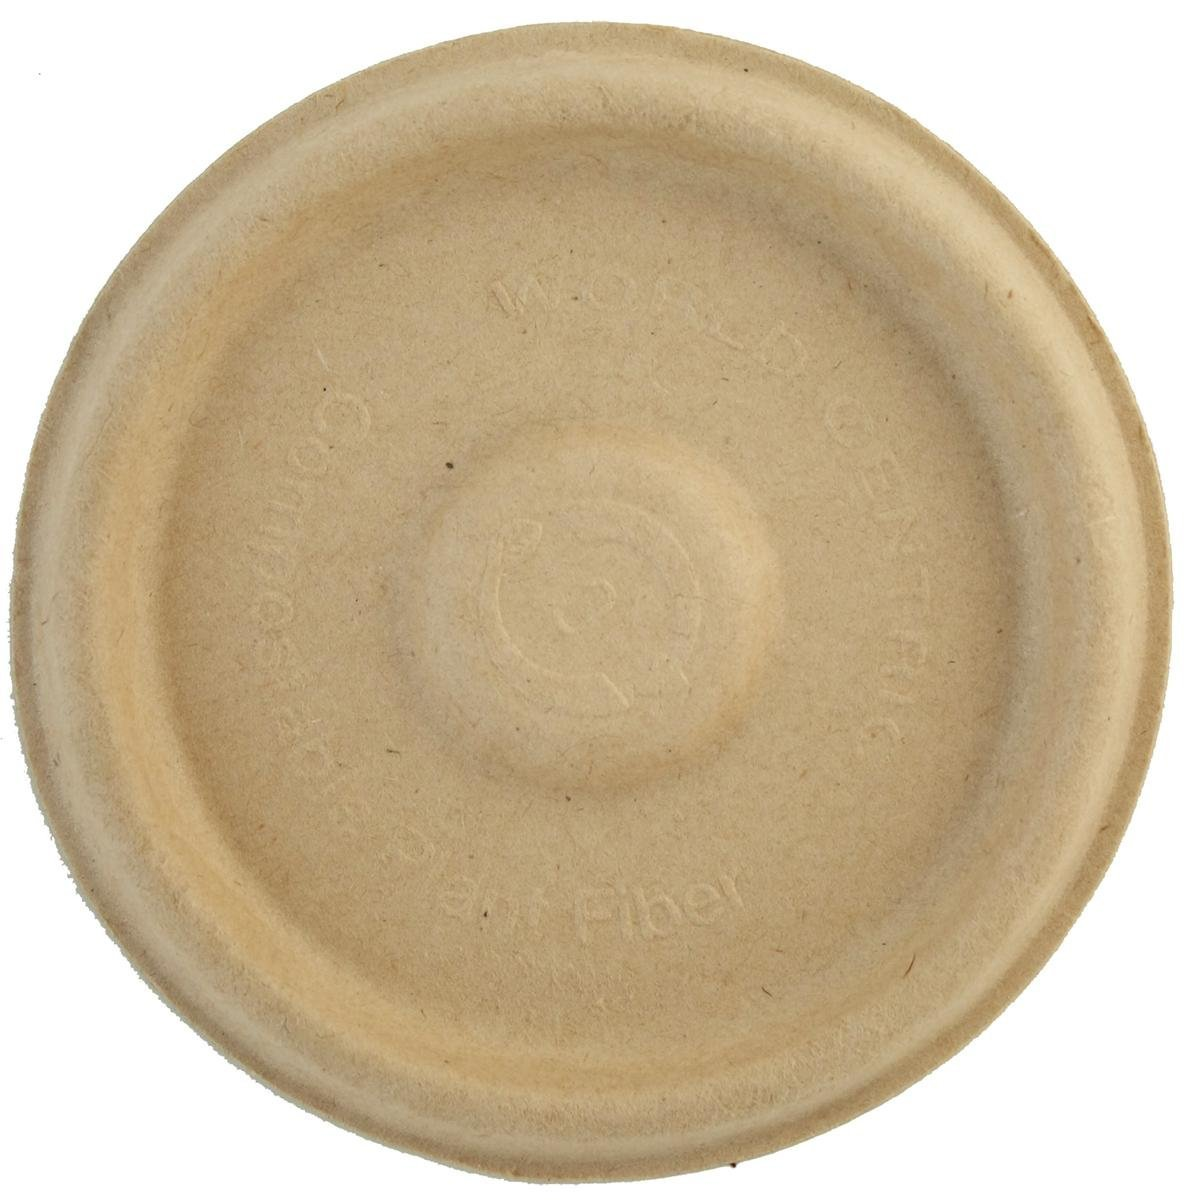 World Centric Unbleached Plant Fiber Souffle Lid for 2 Ounce Cup - 2000 per case. by World Centric